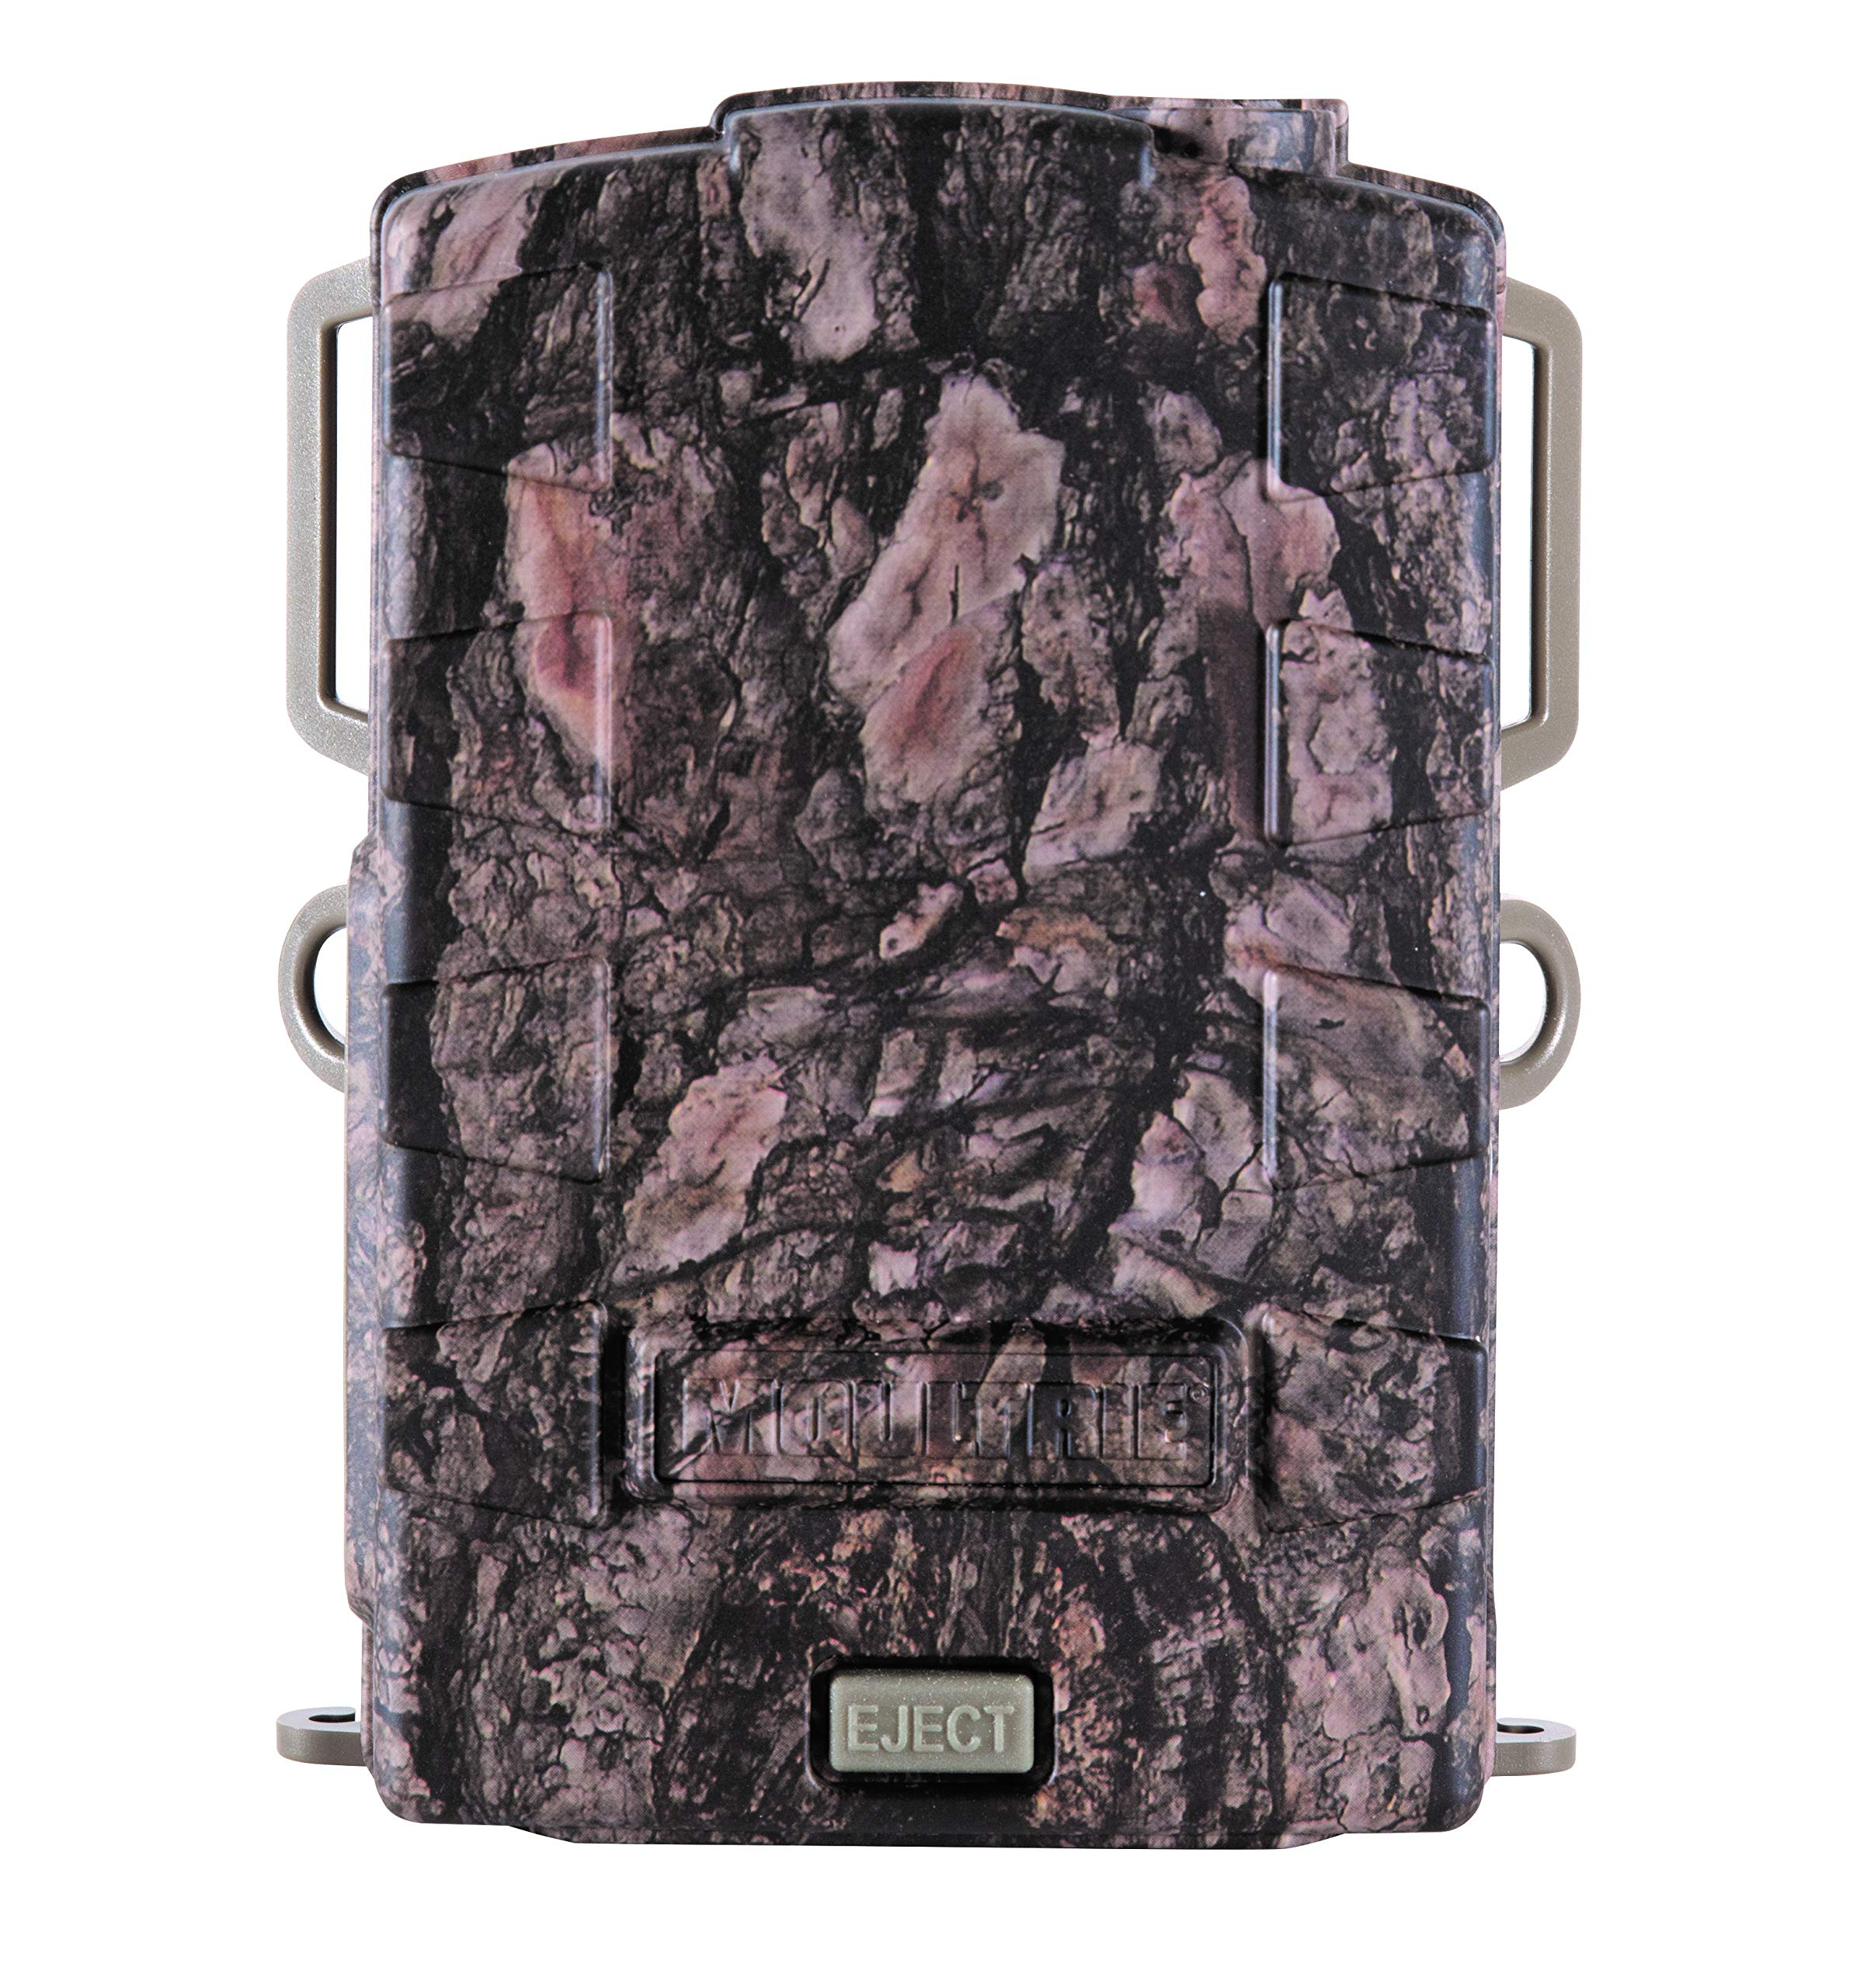 Moultrie Mobile MA2 Field Modem | AT&T Network by Moultrie Mobile